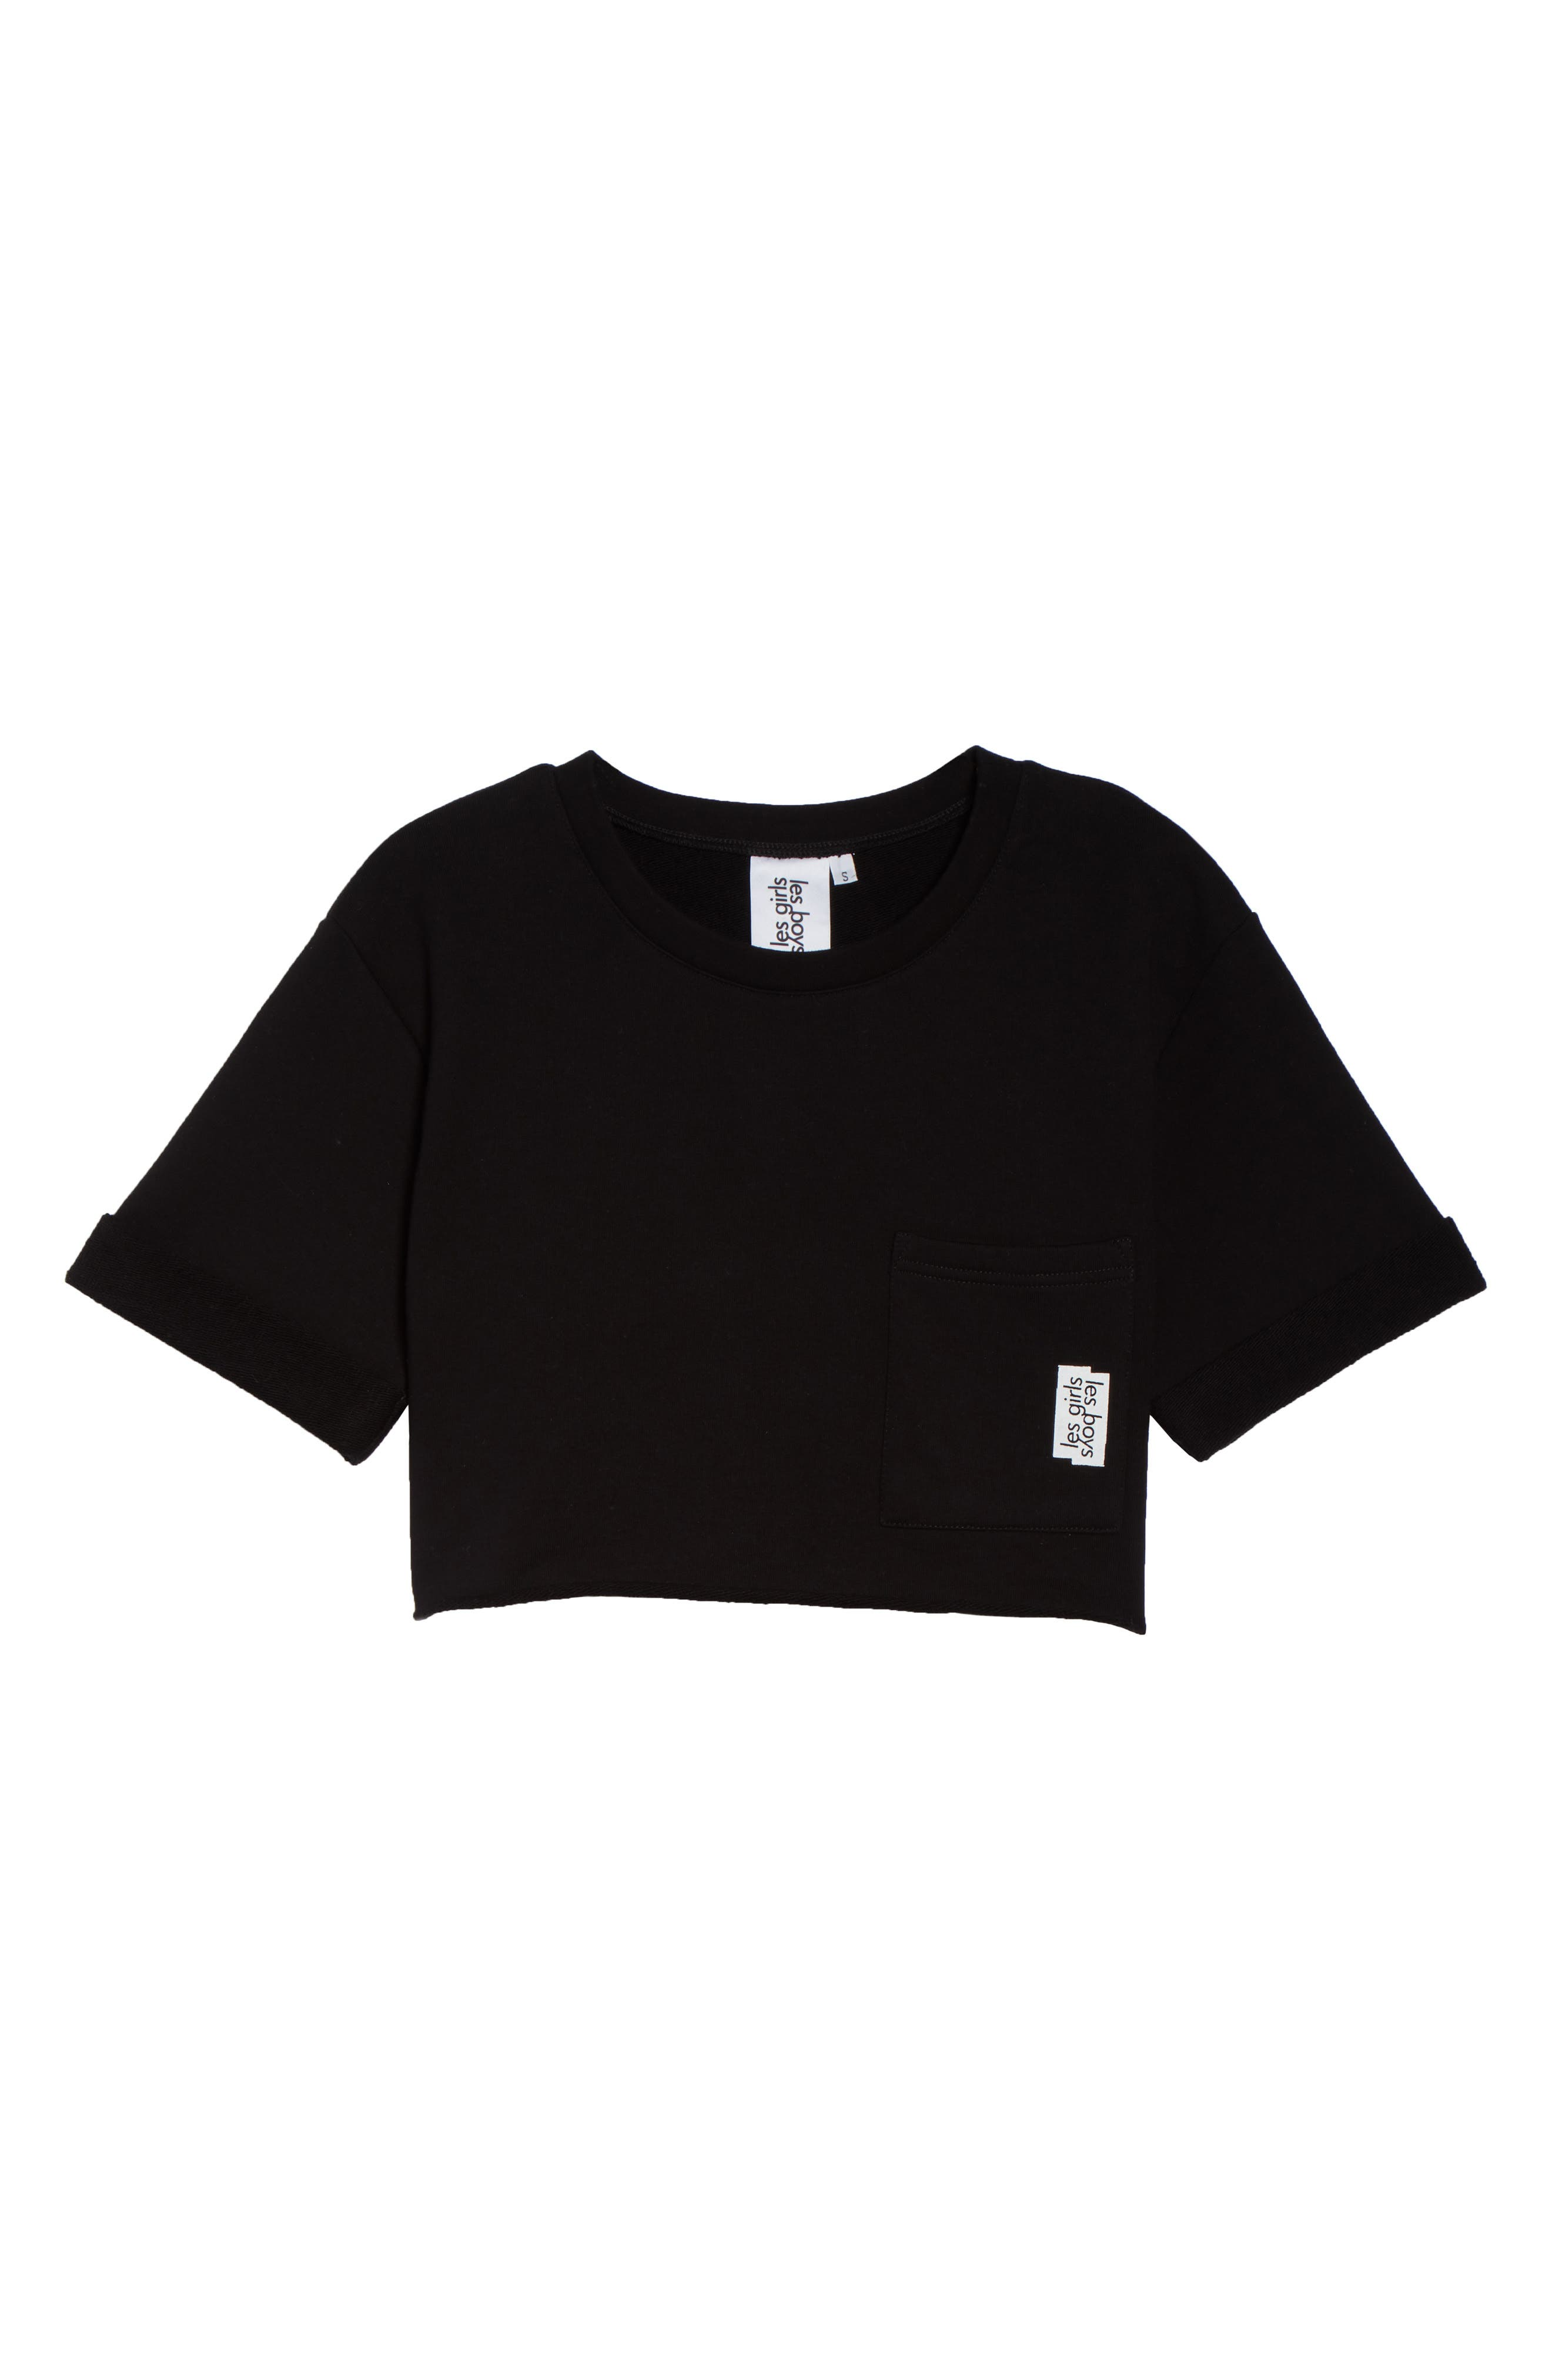 French Terry Crop Sweatshirt,                             Alternate thumbnail 6, color,                             003